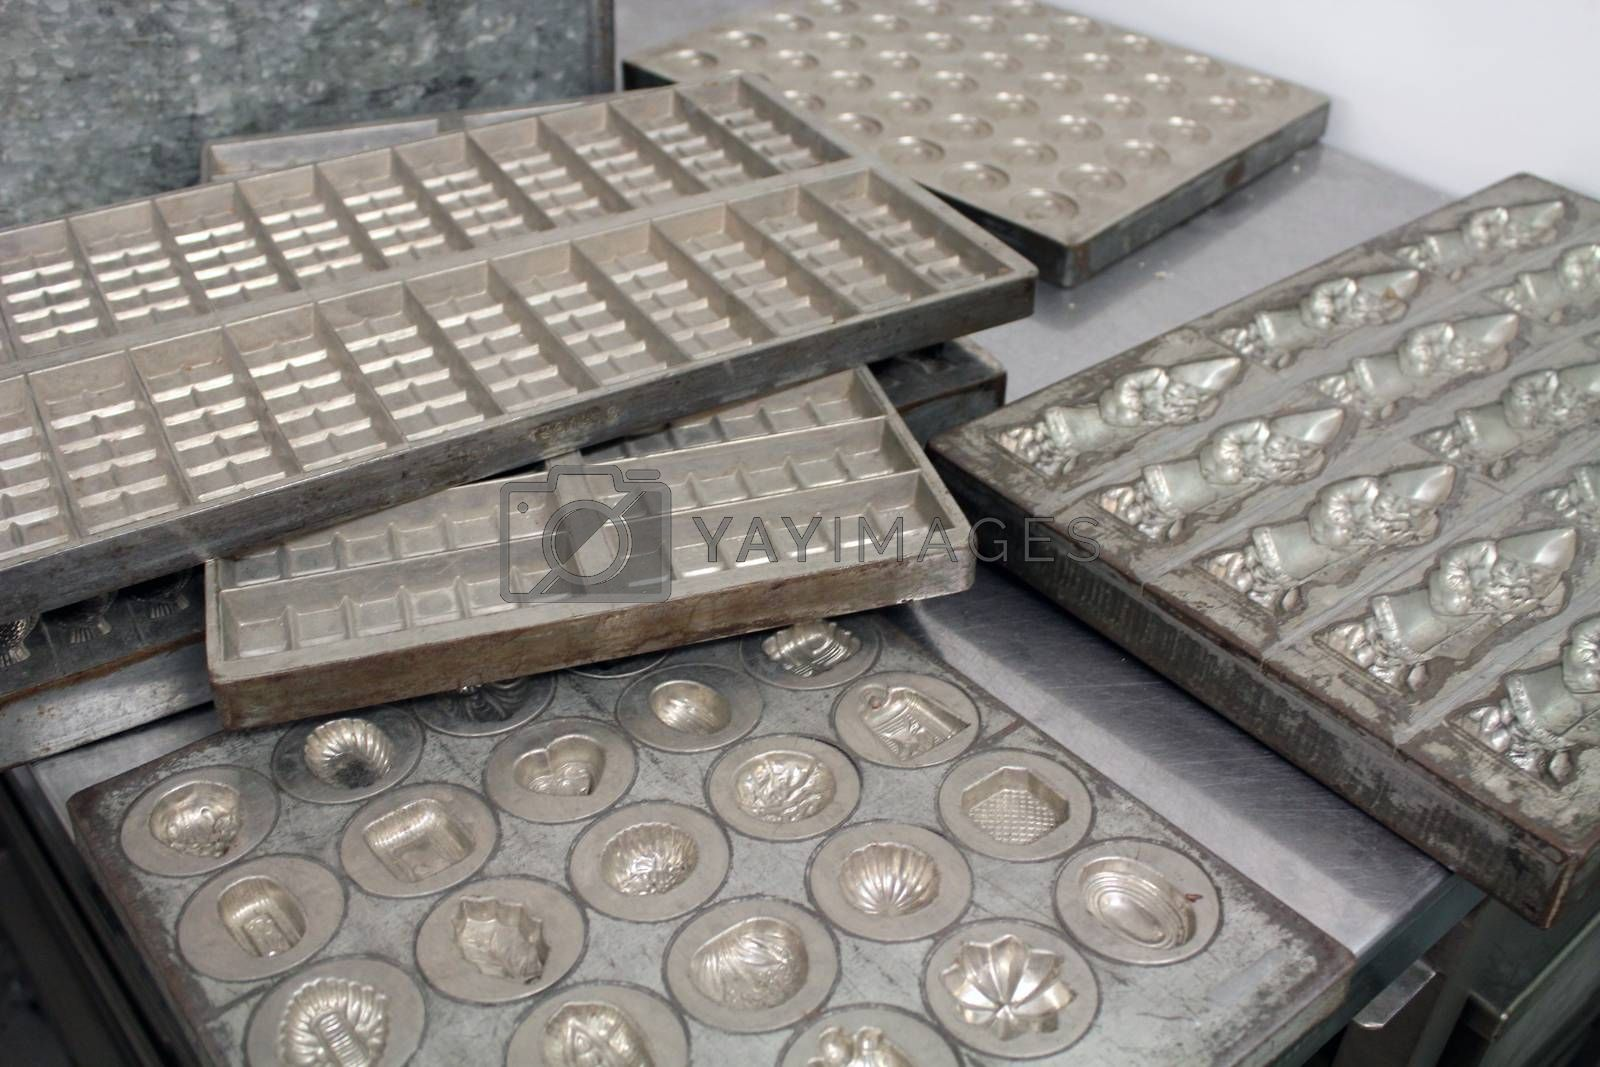 Royalty free image of Iron molds for chocolates by aamulya